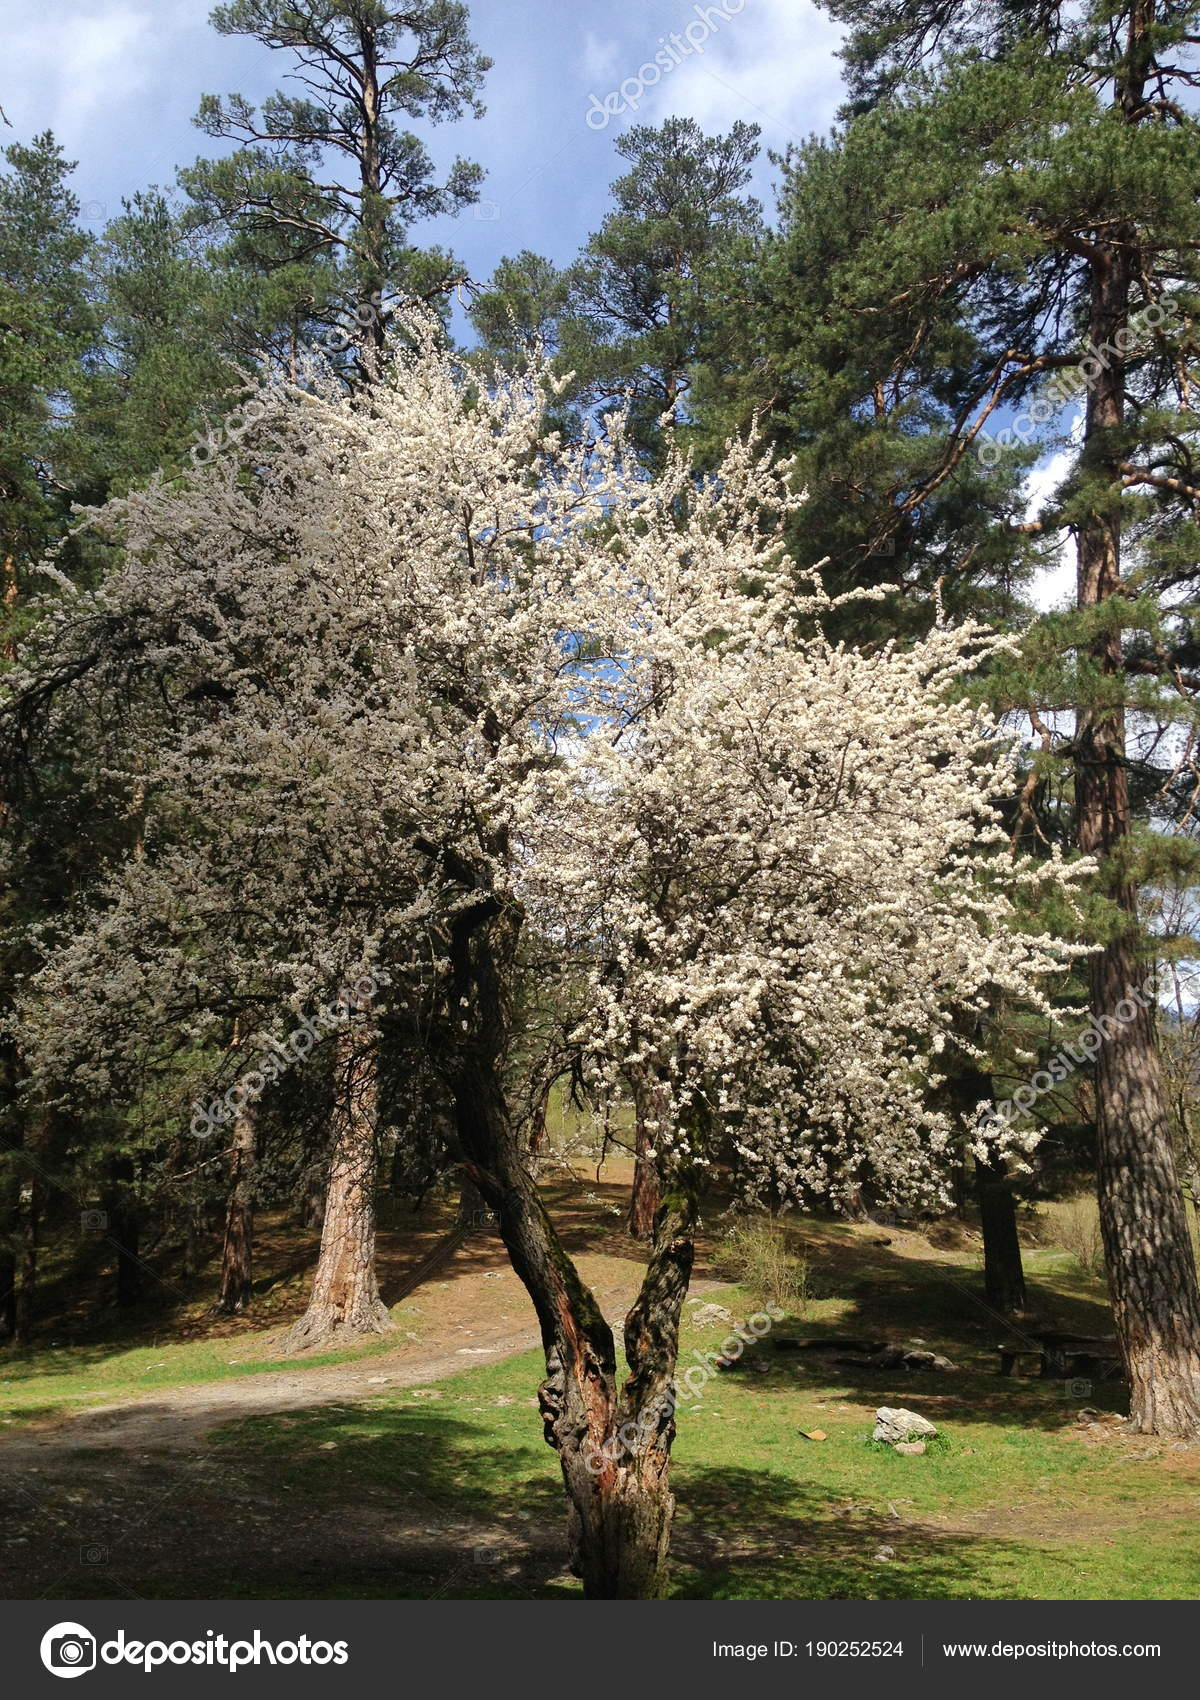 Blooming Spring Tree White Flowers Pine Trees Background Sunny Clear